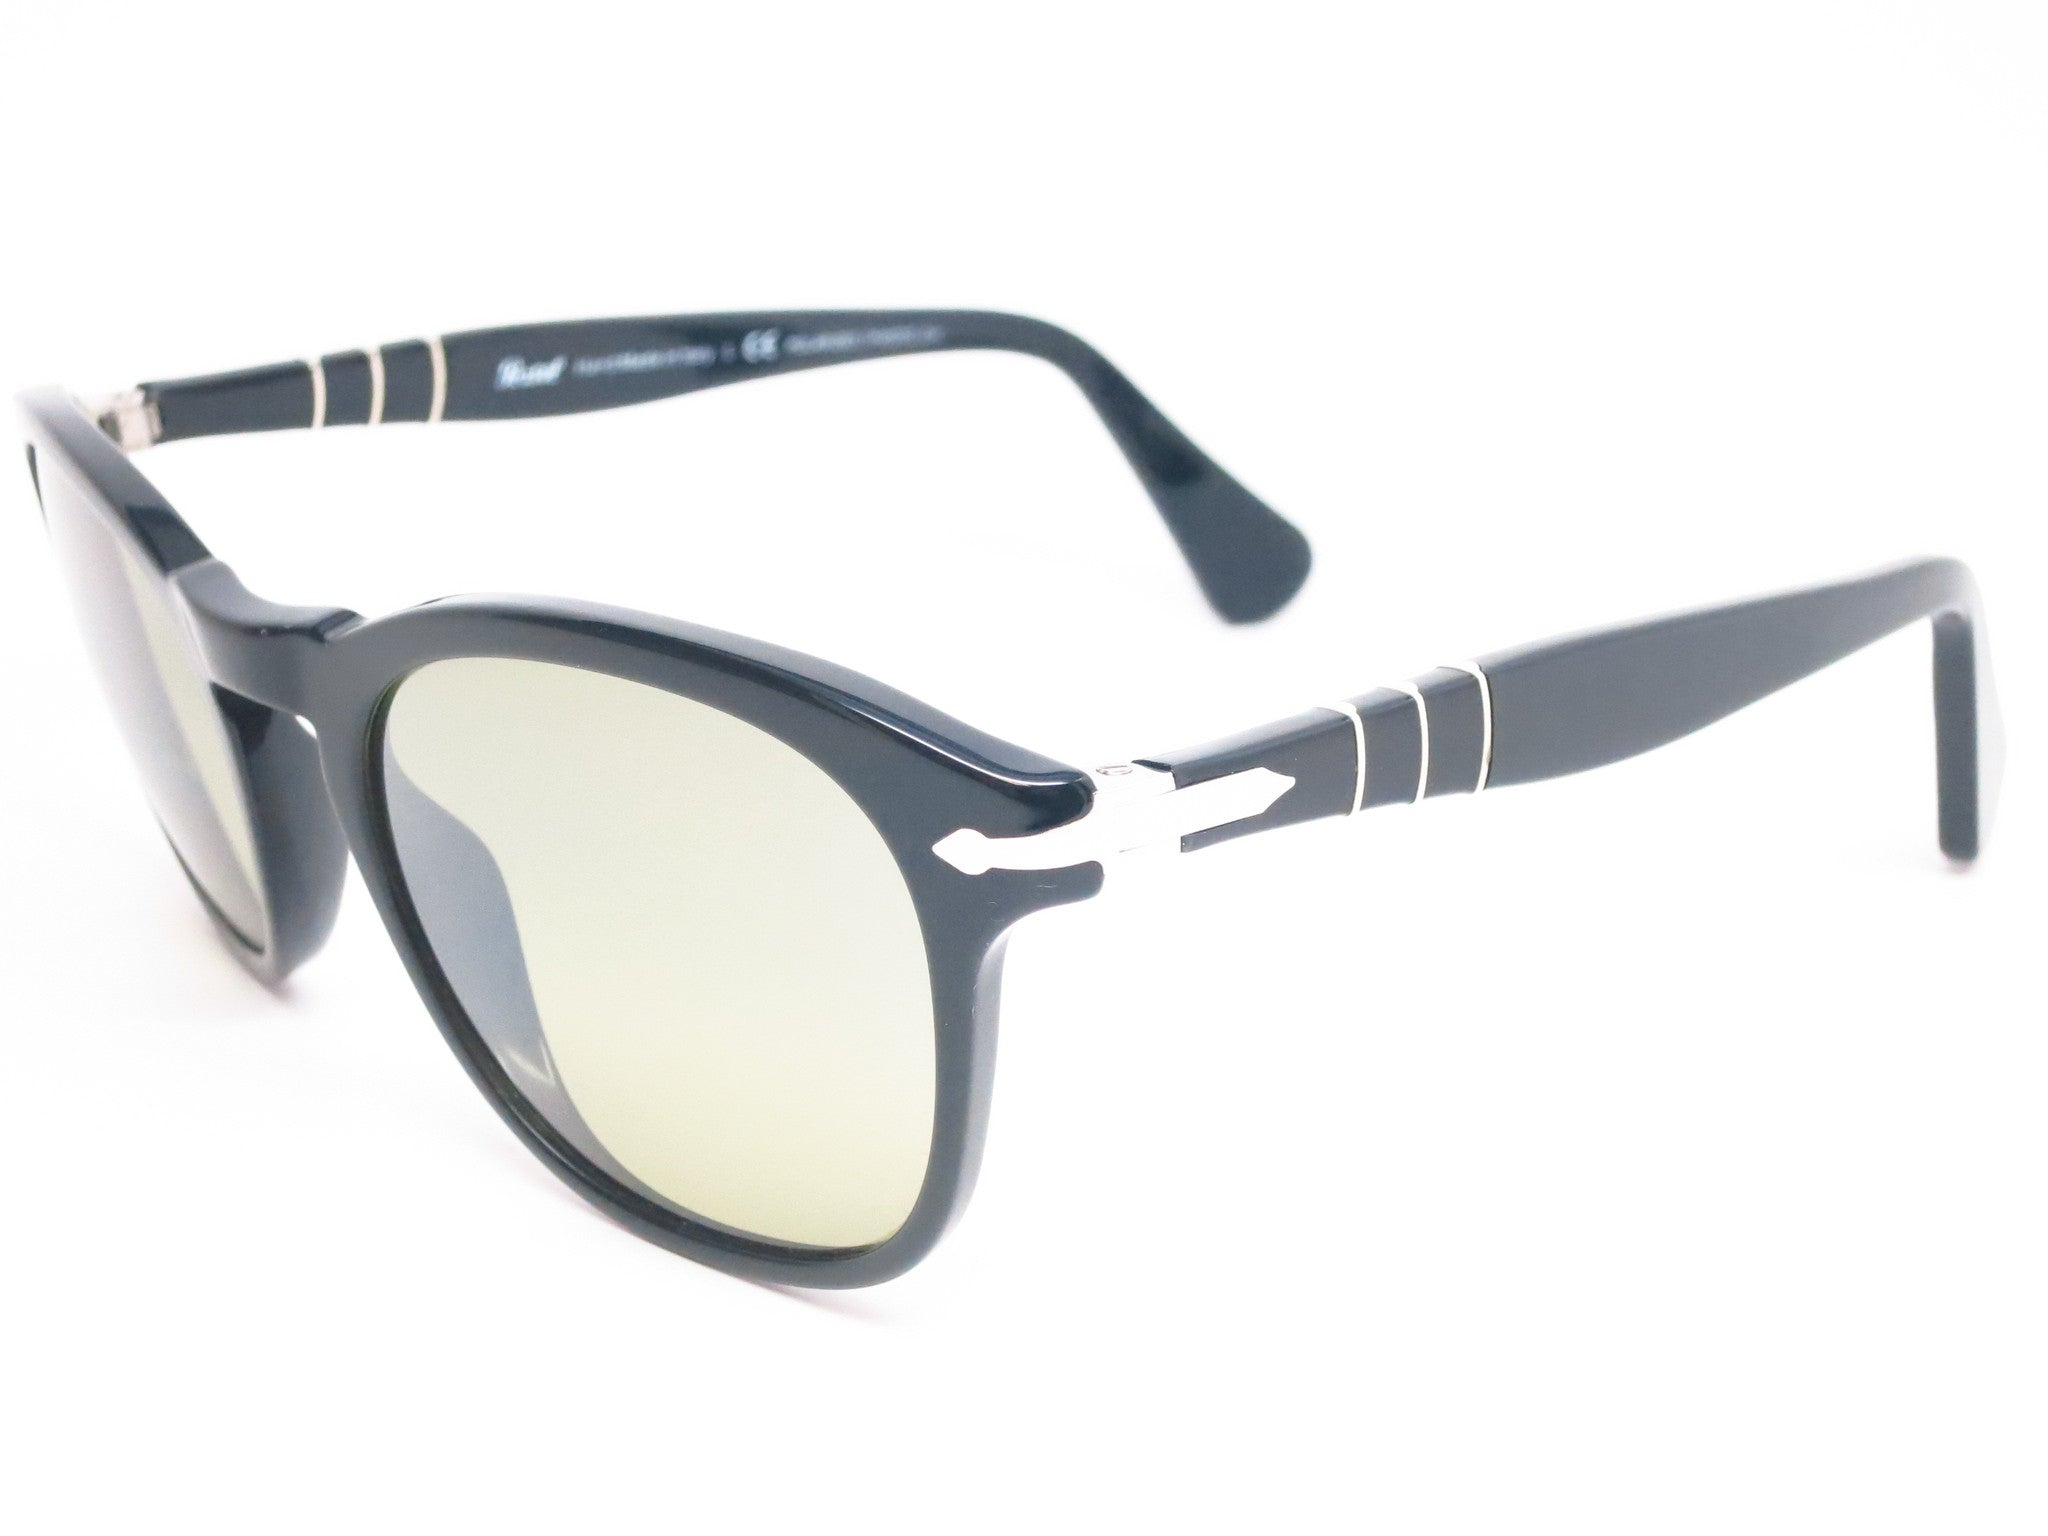 Persol PO 3056-S 95/83 Black Polarized / Photochromatic Sunglasses ...